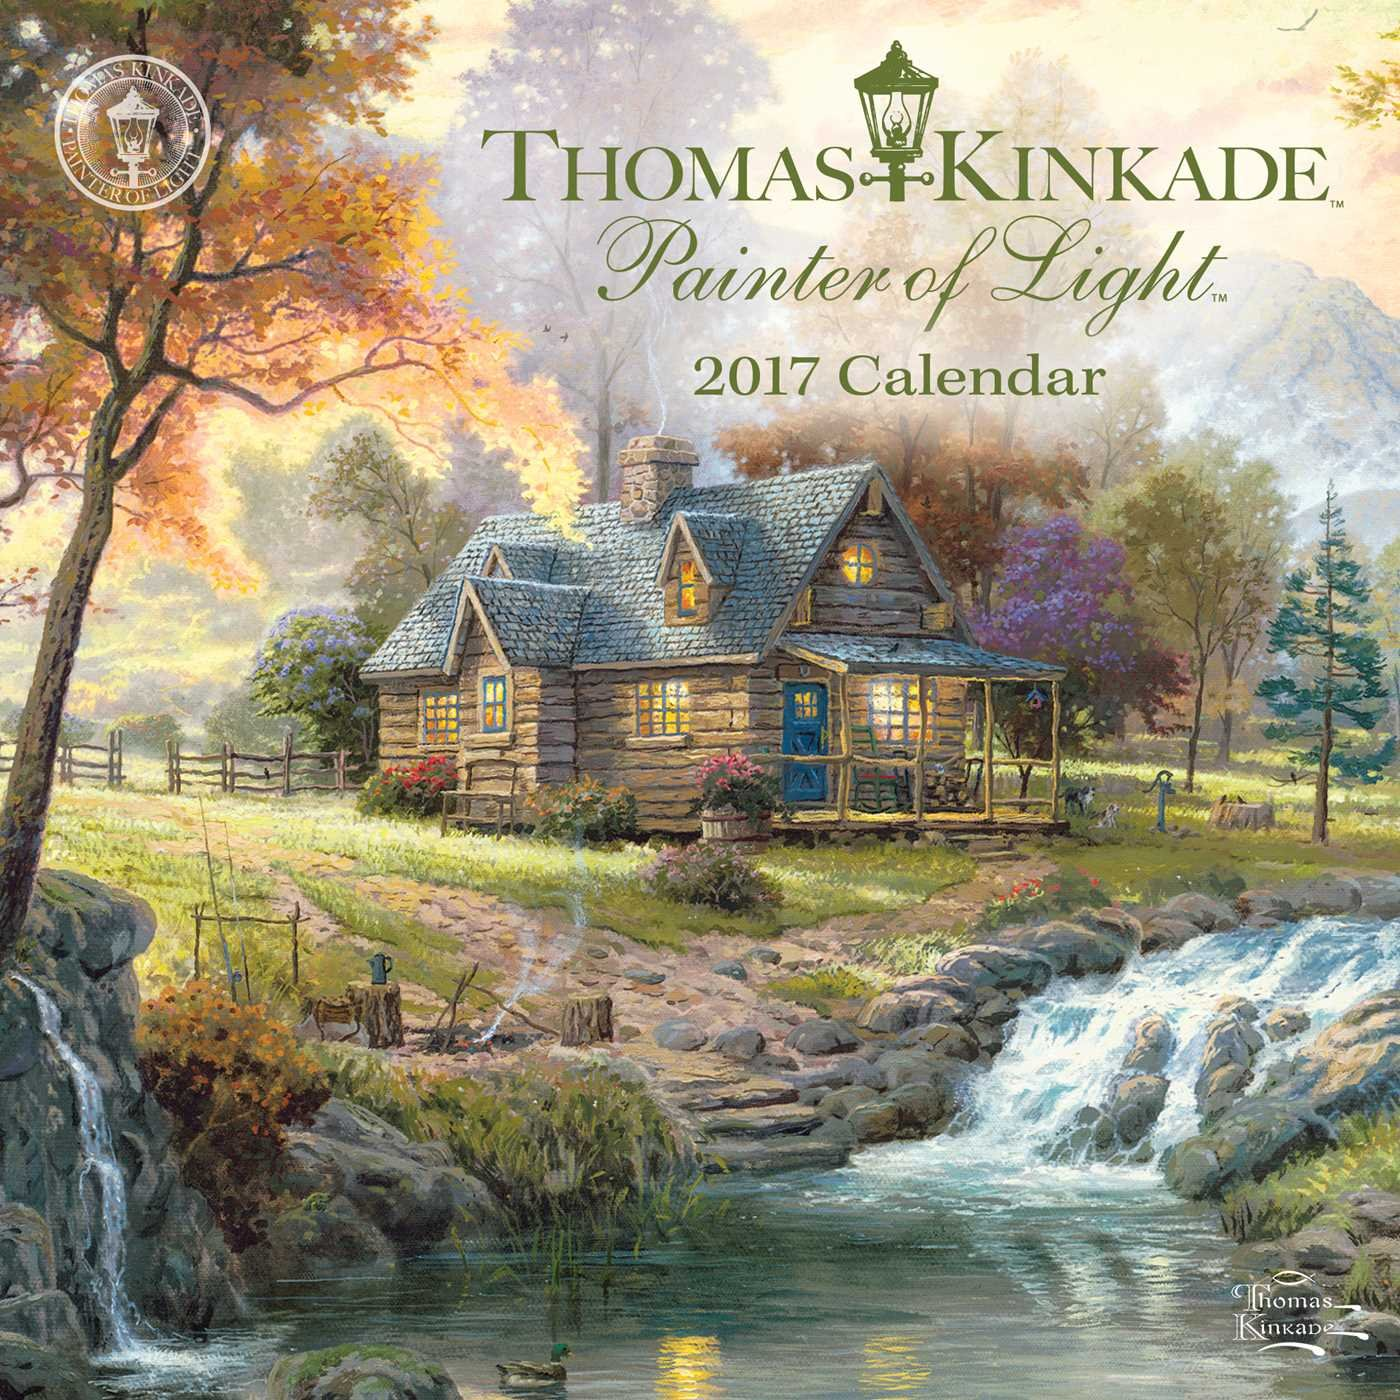 High Quality Buy Thomas Kinkade Painter Of Light 2017 Mini Wall Calendar Book Online At  Low Prices In India | Thomas Kinkade Painter Of Light 2017 Mini Wall  Calendar ... Nice Look